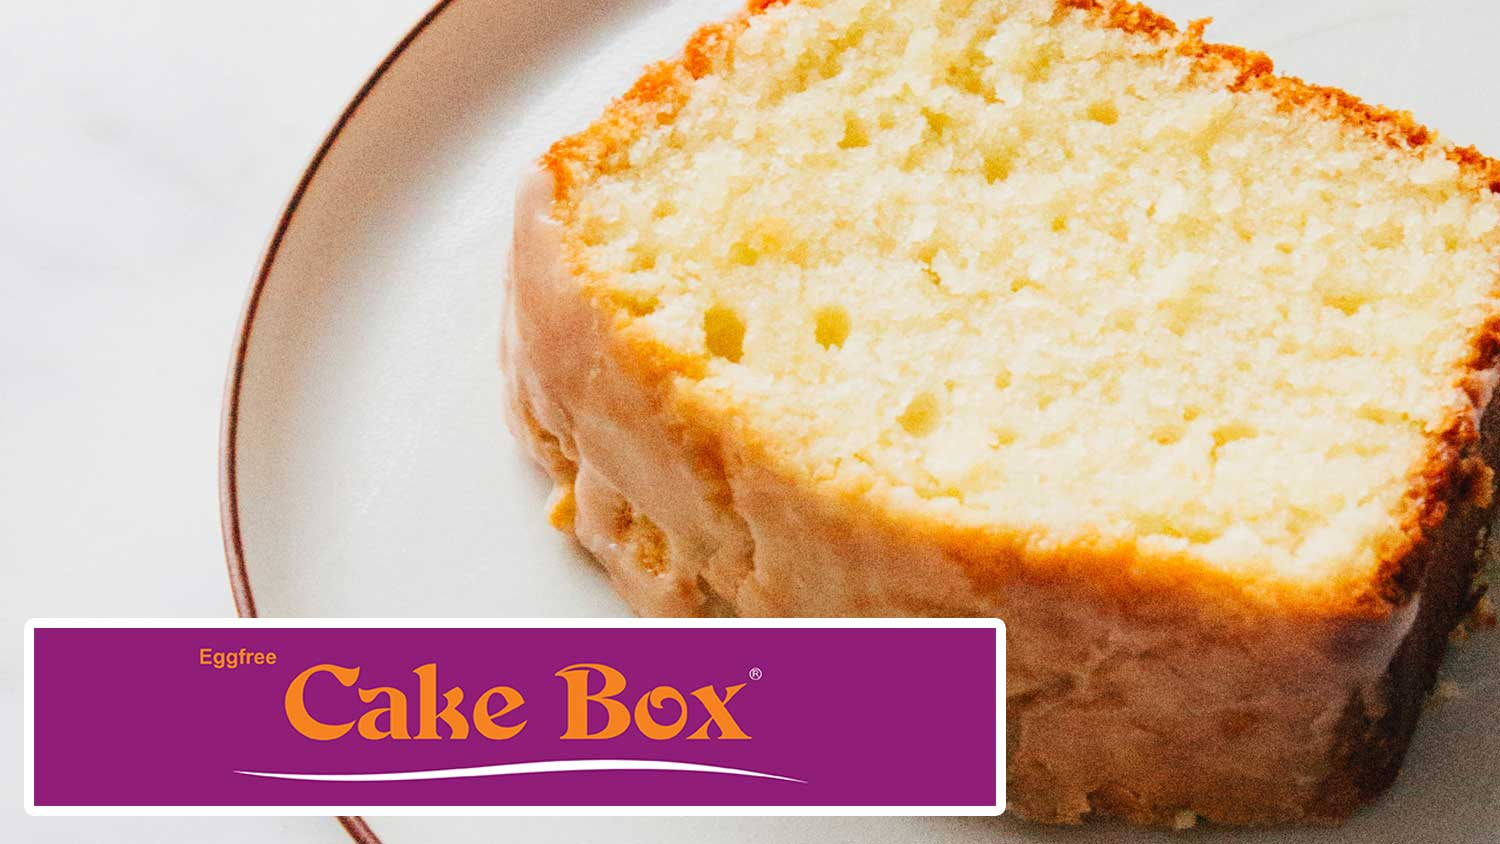 Cake Box Just Launched 3 Vegan Cakes